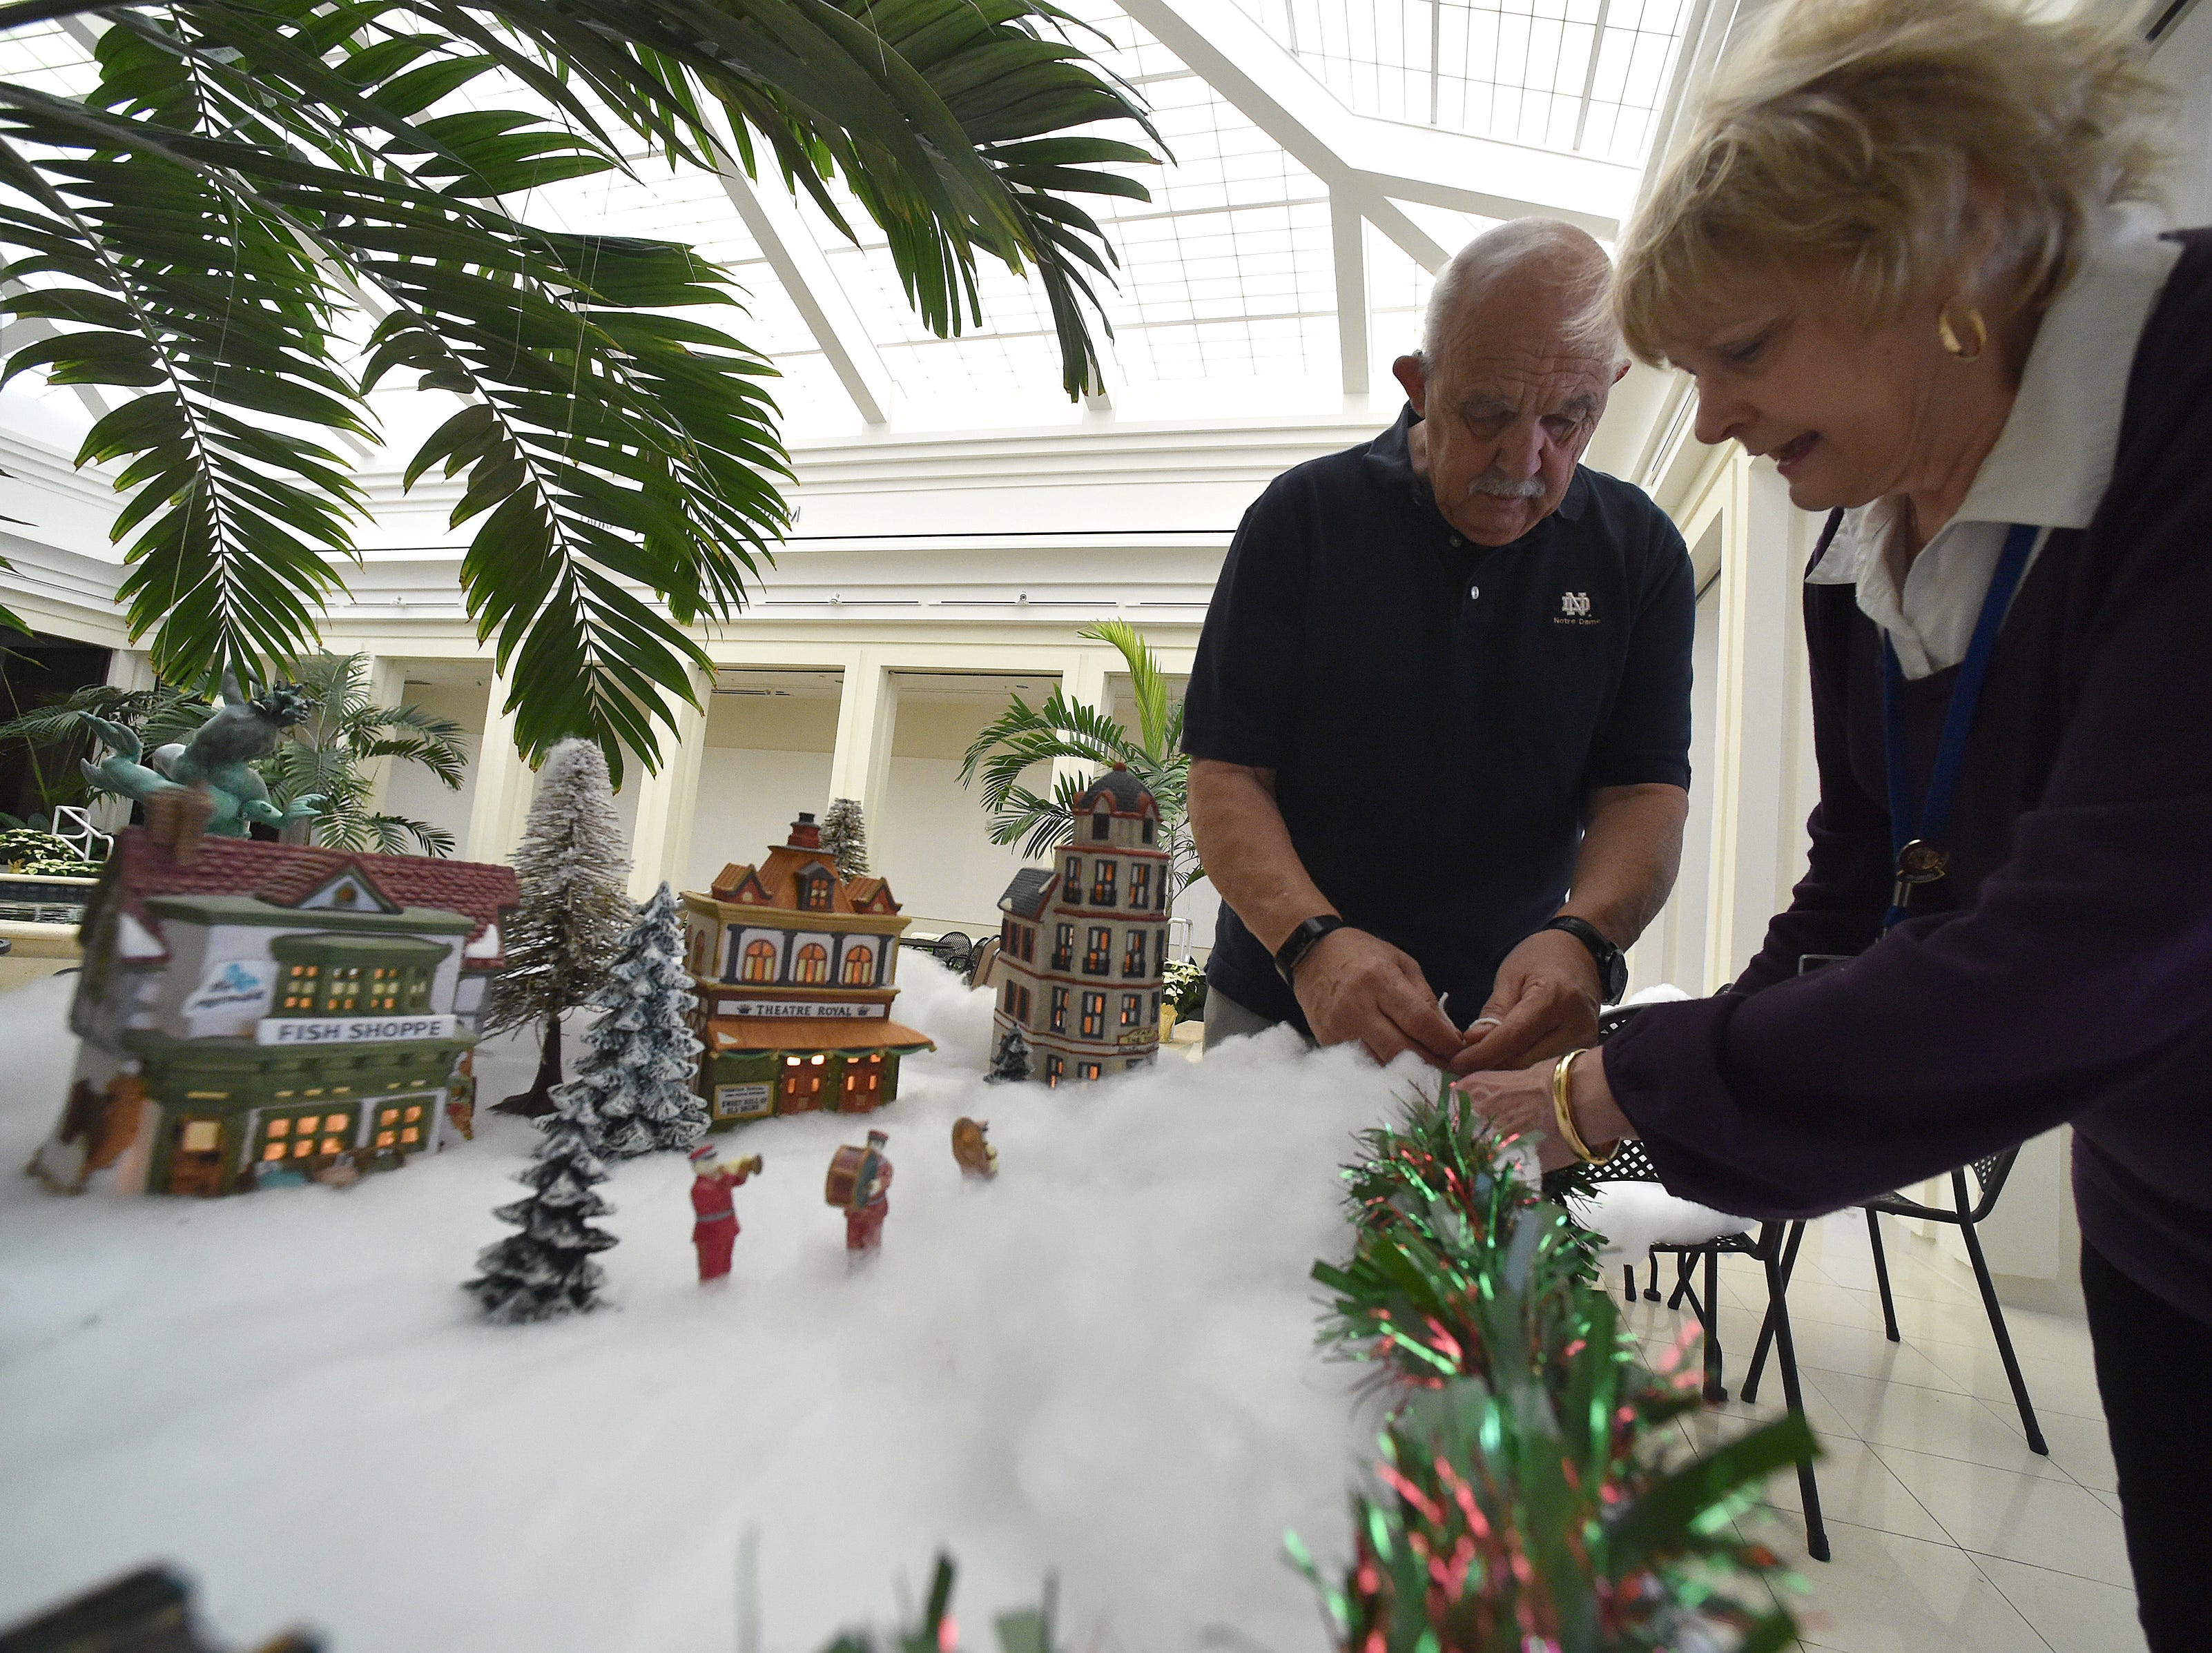 The Vero Beach Museum of Art prepares for their annual Holidays at the Museum event on Sunday, Dec. 2nd, 2018, from 1 p.m. to 4 p.m. at 3001 Riverside Park Drive in Vero Beach.  Admission to the museum is free for the annual event.